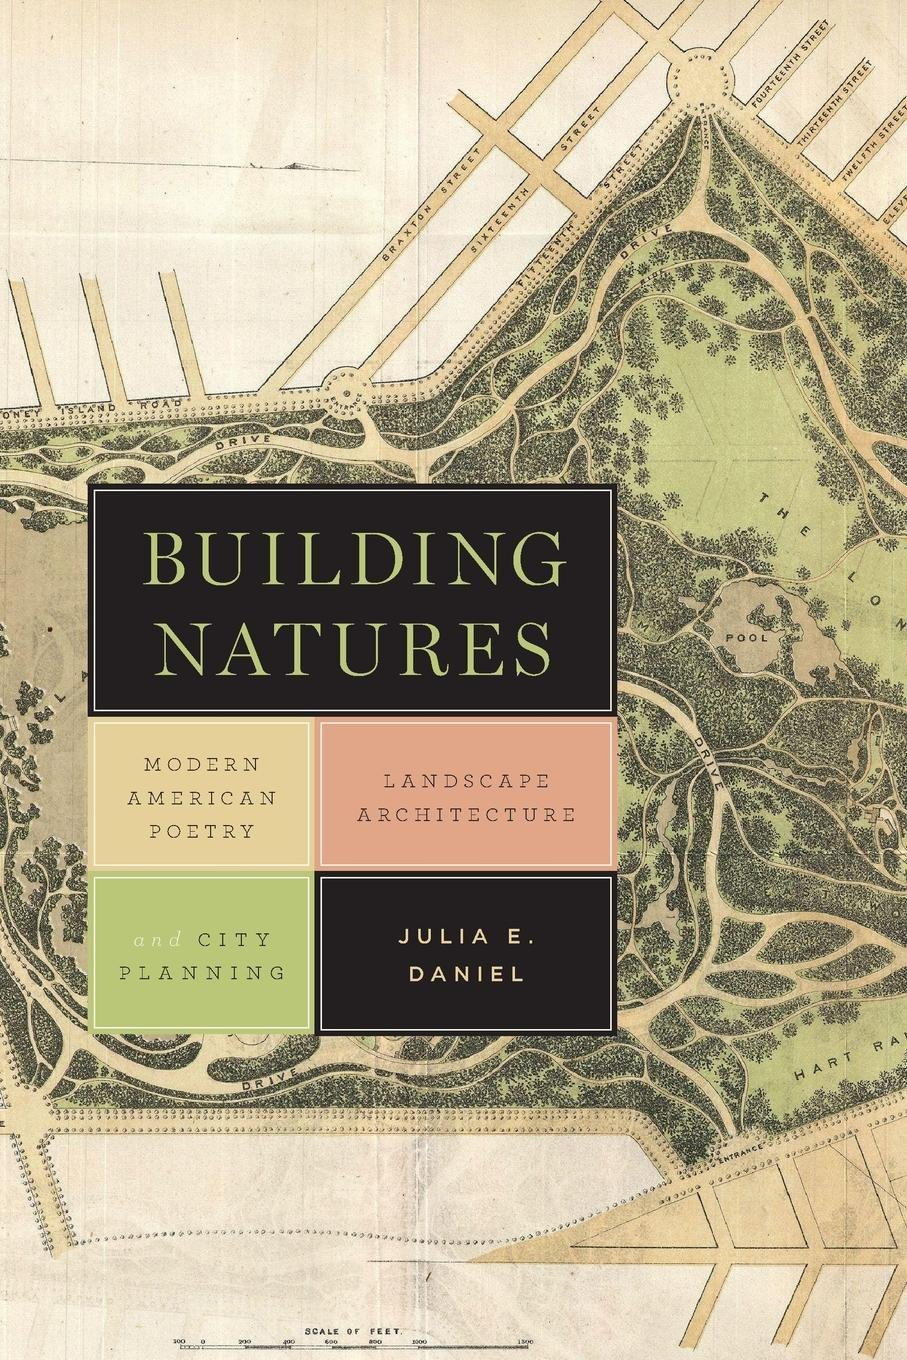 Amazon com: Building Natures: Modern American Poetry